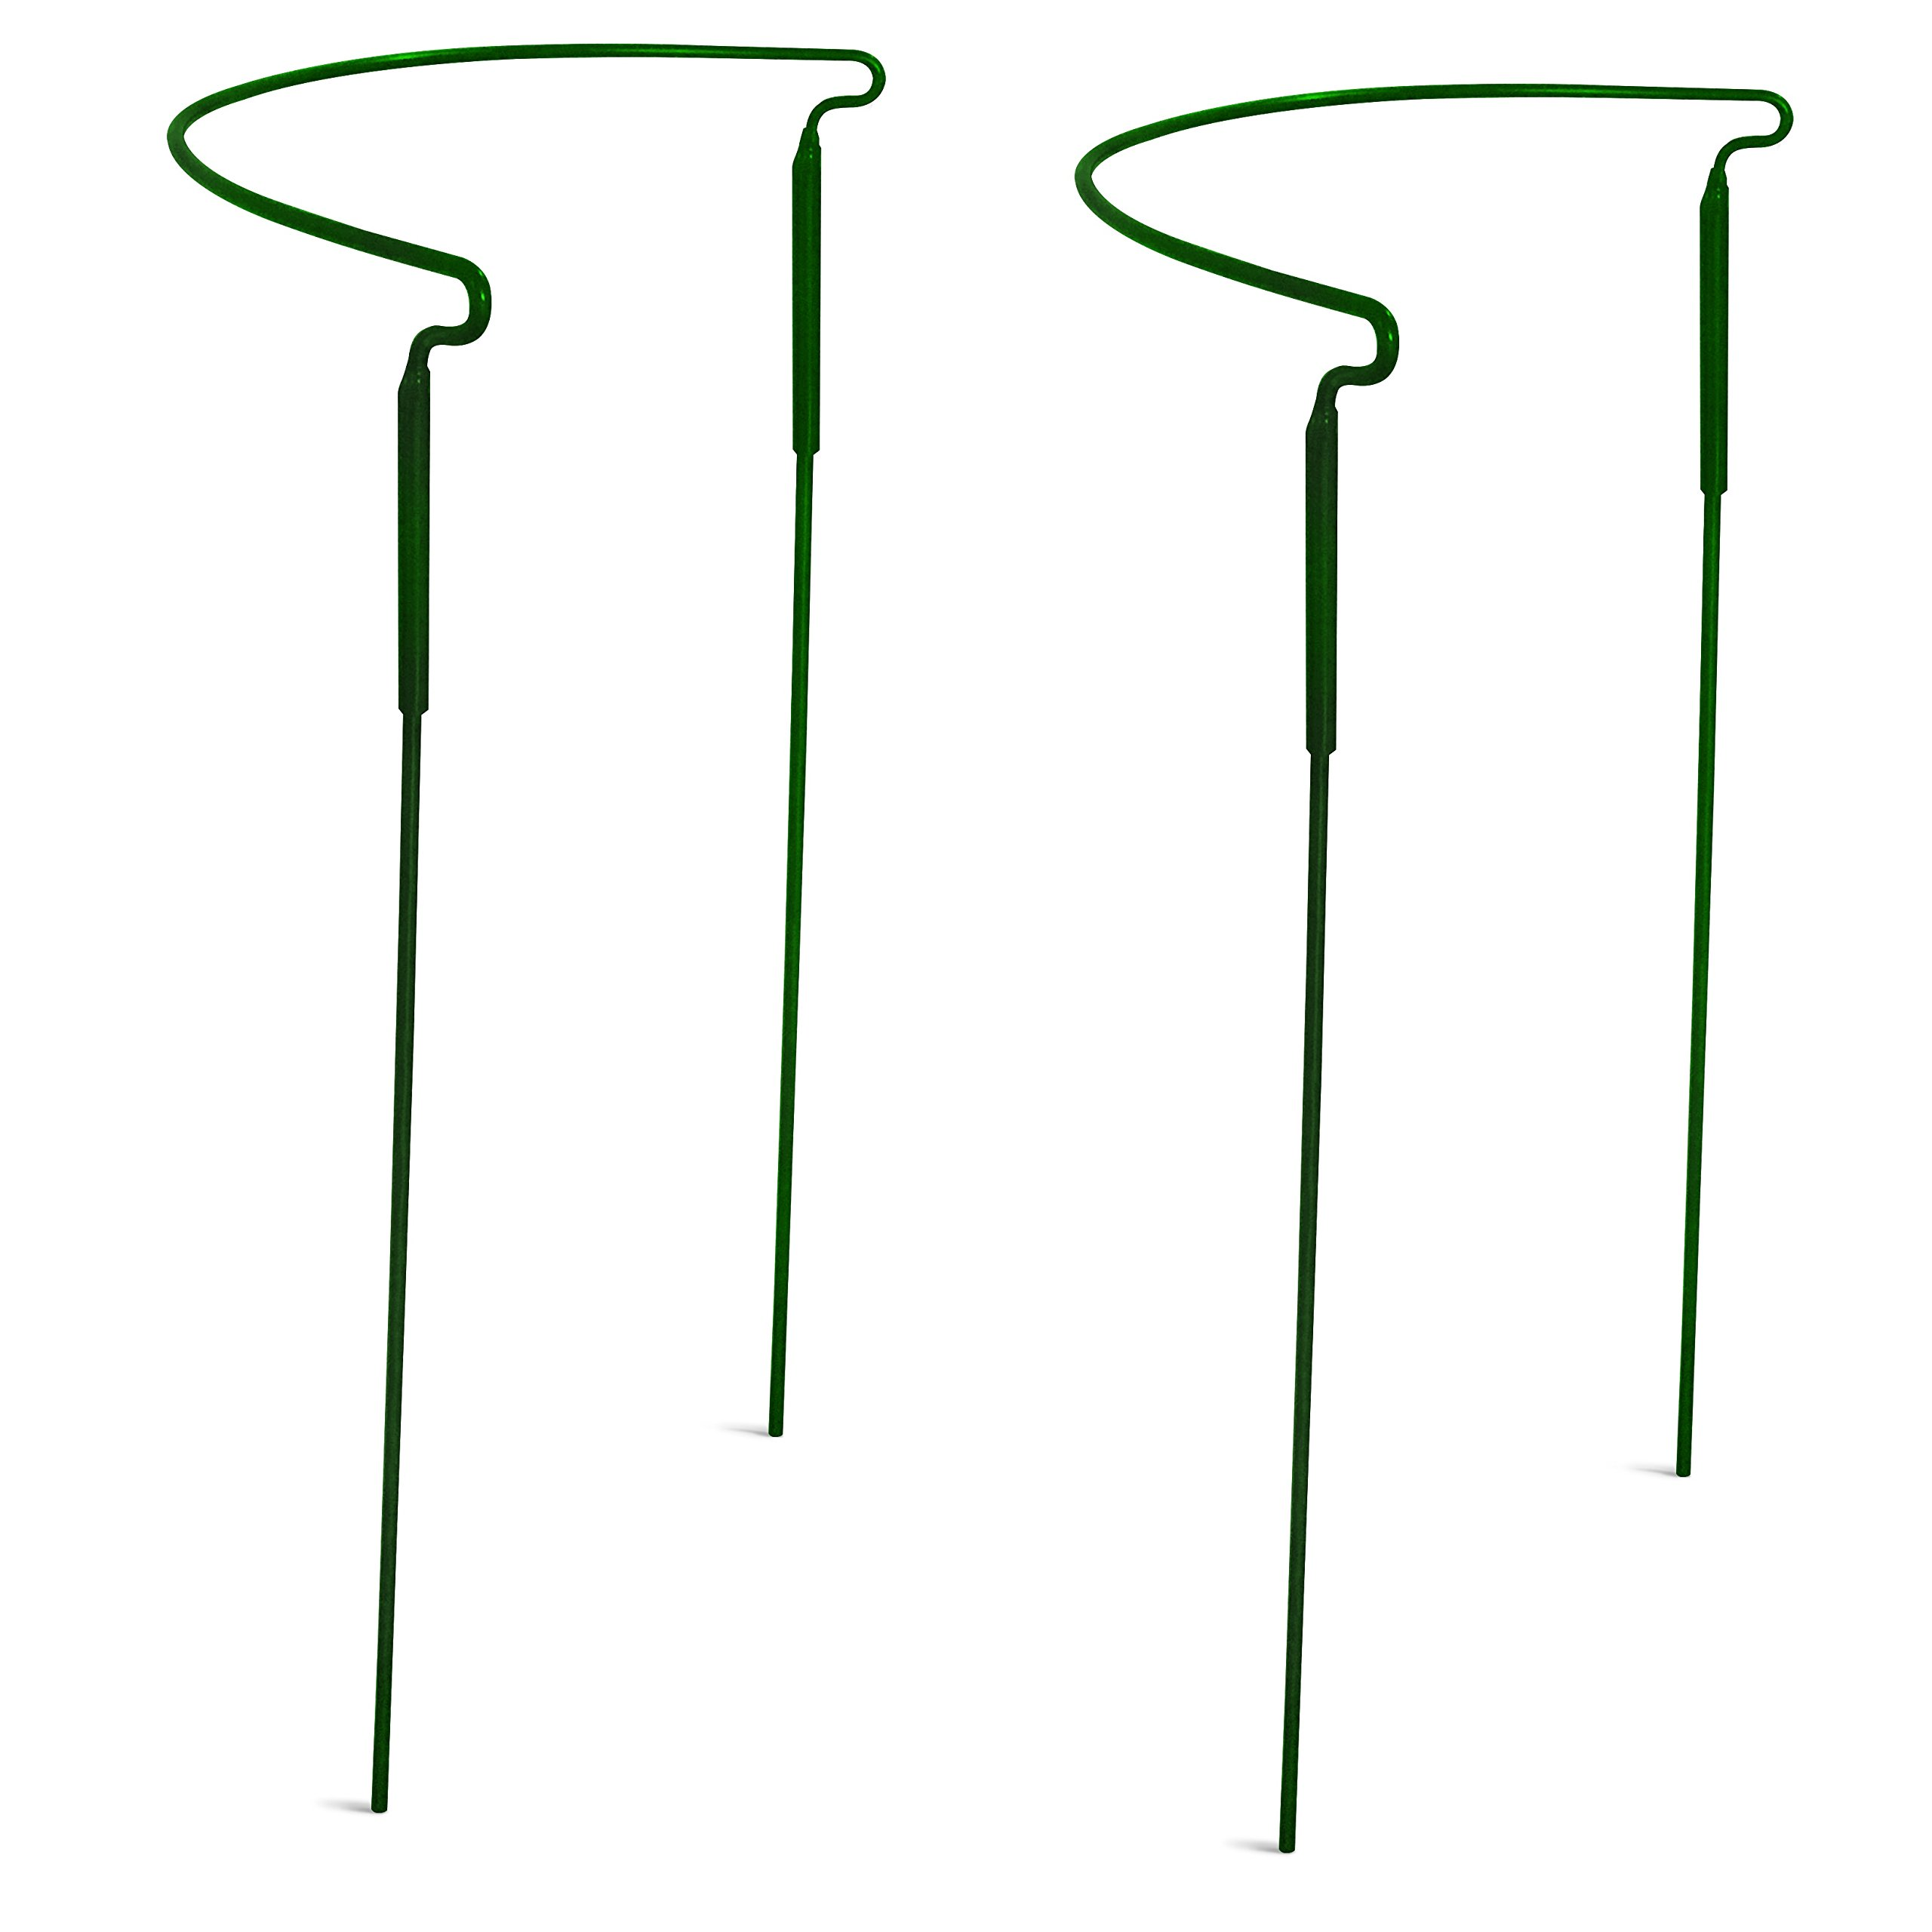 """GrayBunny GB-6896A2 Half Round Plant Support Ring/Cage - 15""""x 30"""", 2-Pack Garden Green Color, Solid Steel Rust & UV Resistant Semi-Circular Plant Border Metal Support, Wire Hoop Plant Support System"""